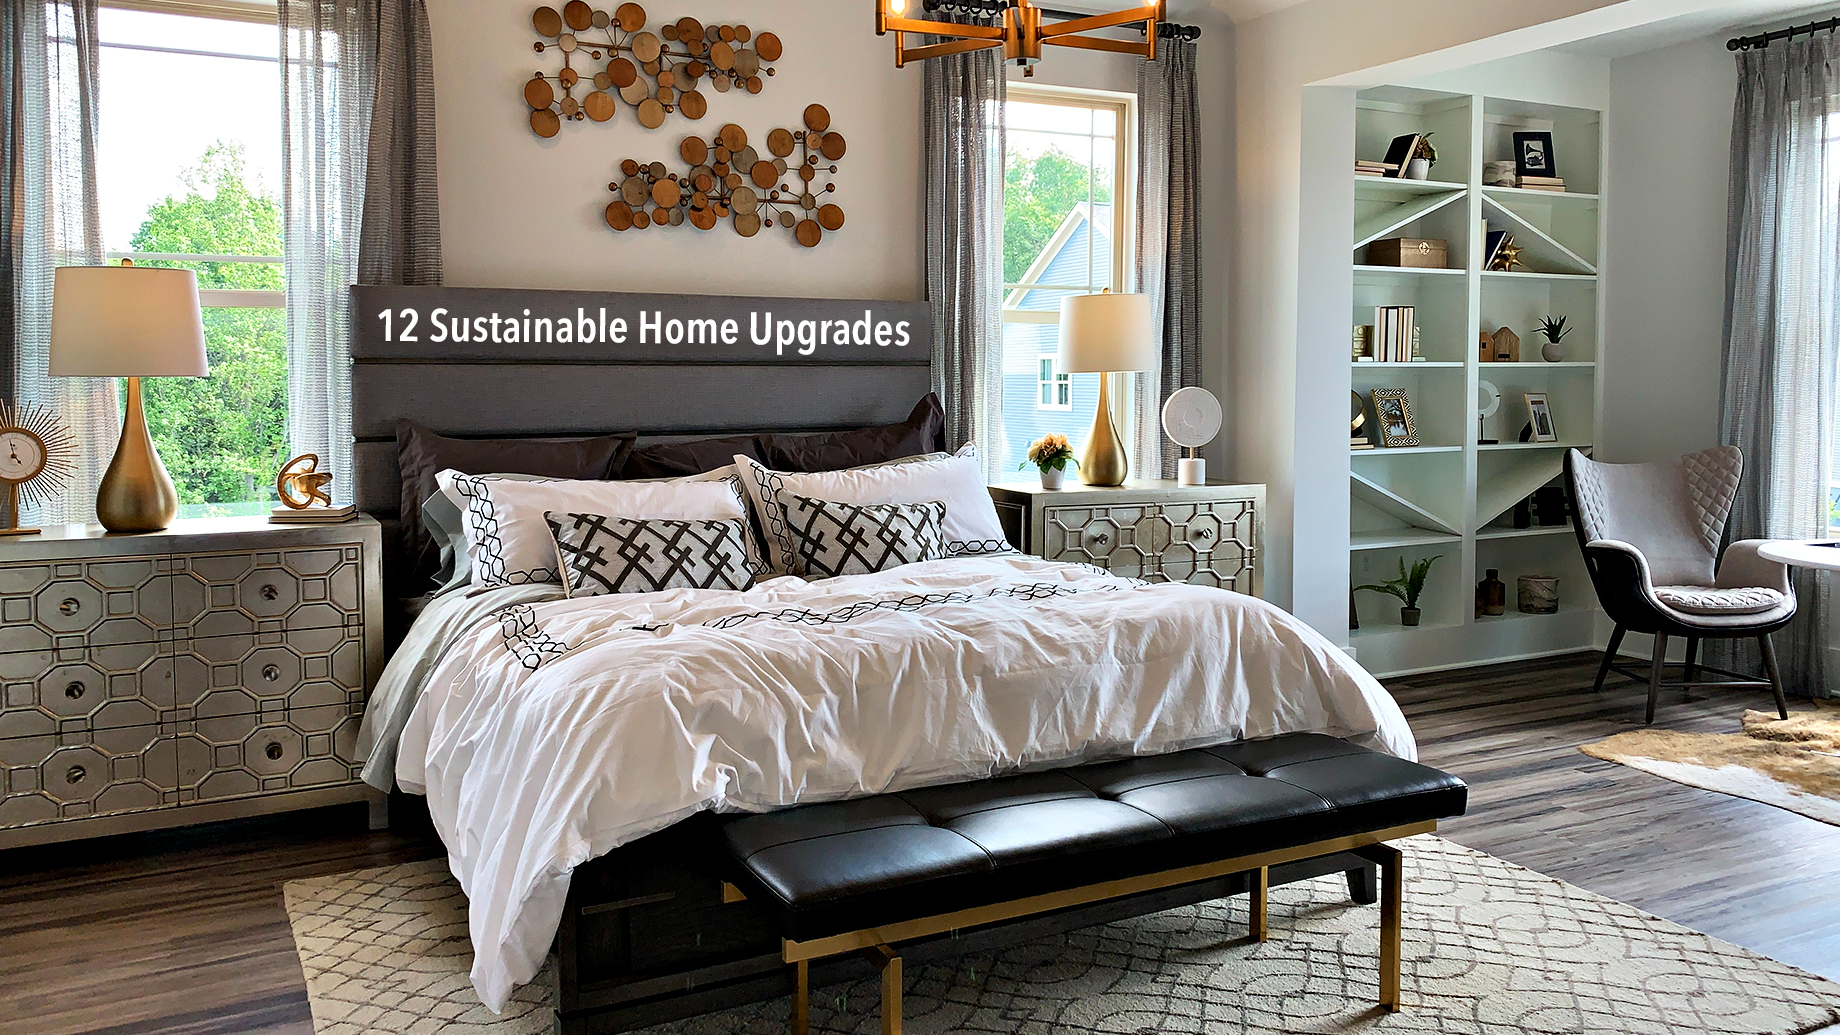 12 Sustainable Home Upgrades For Greater Savings